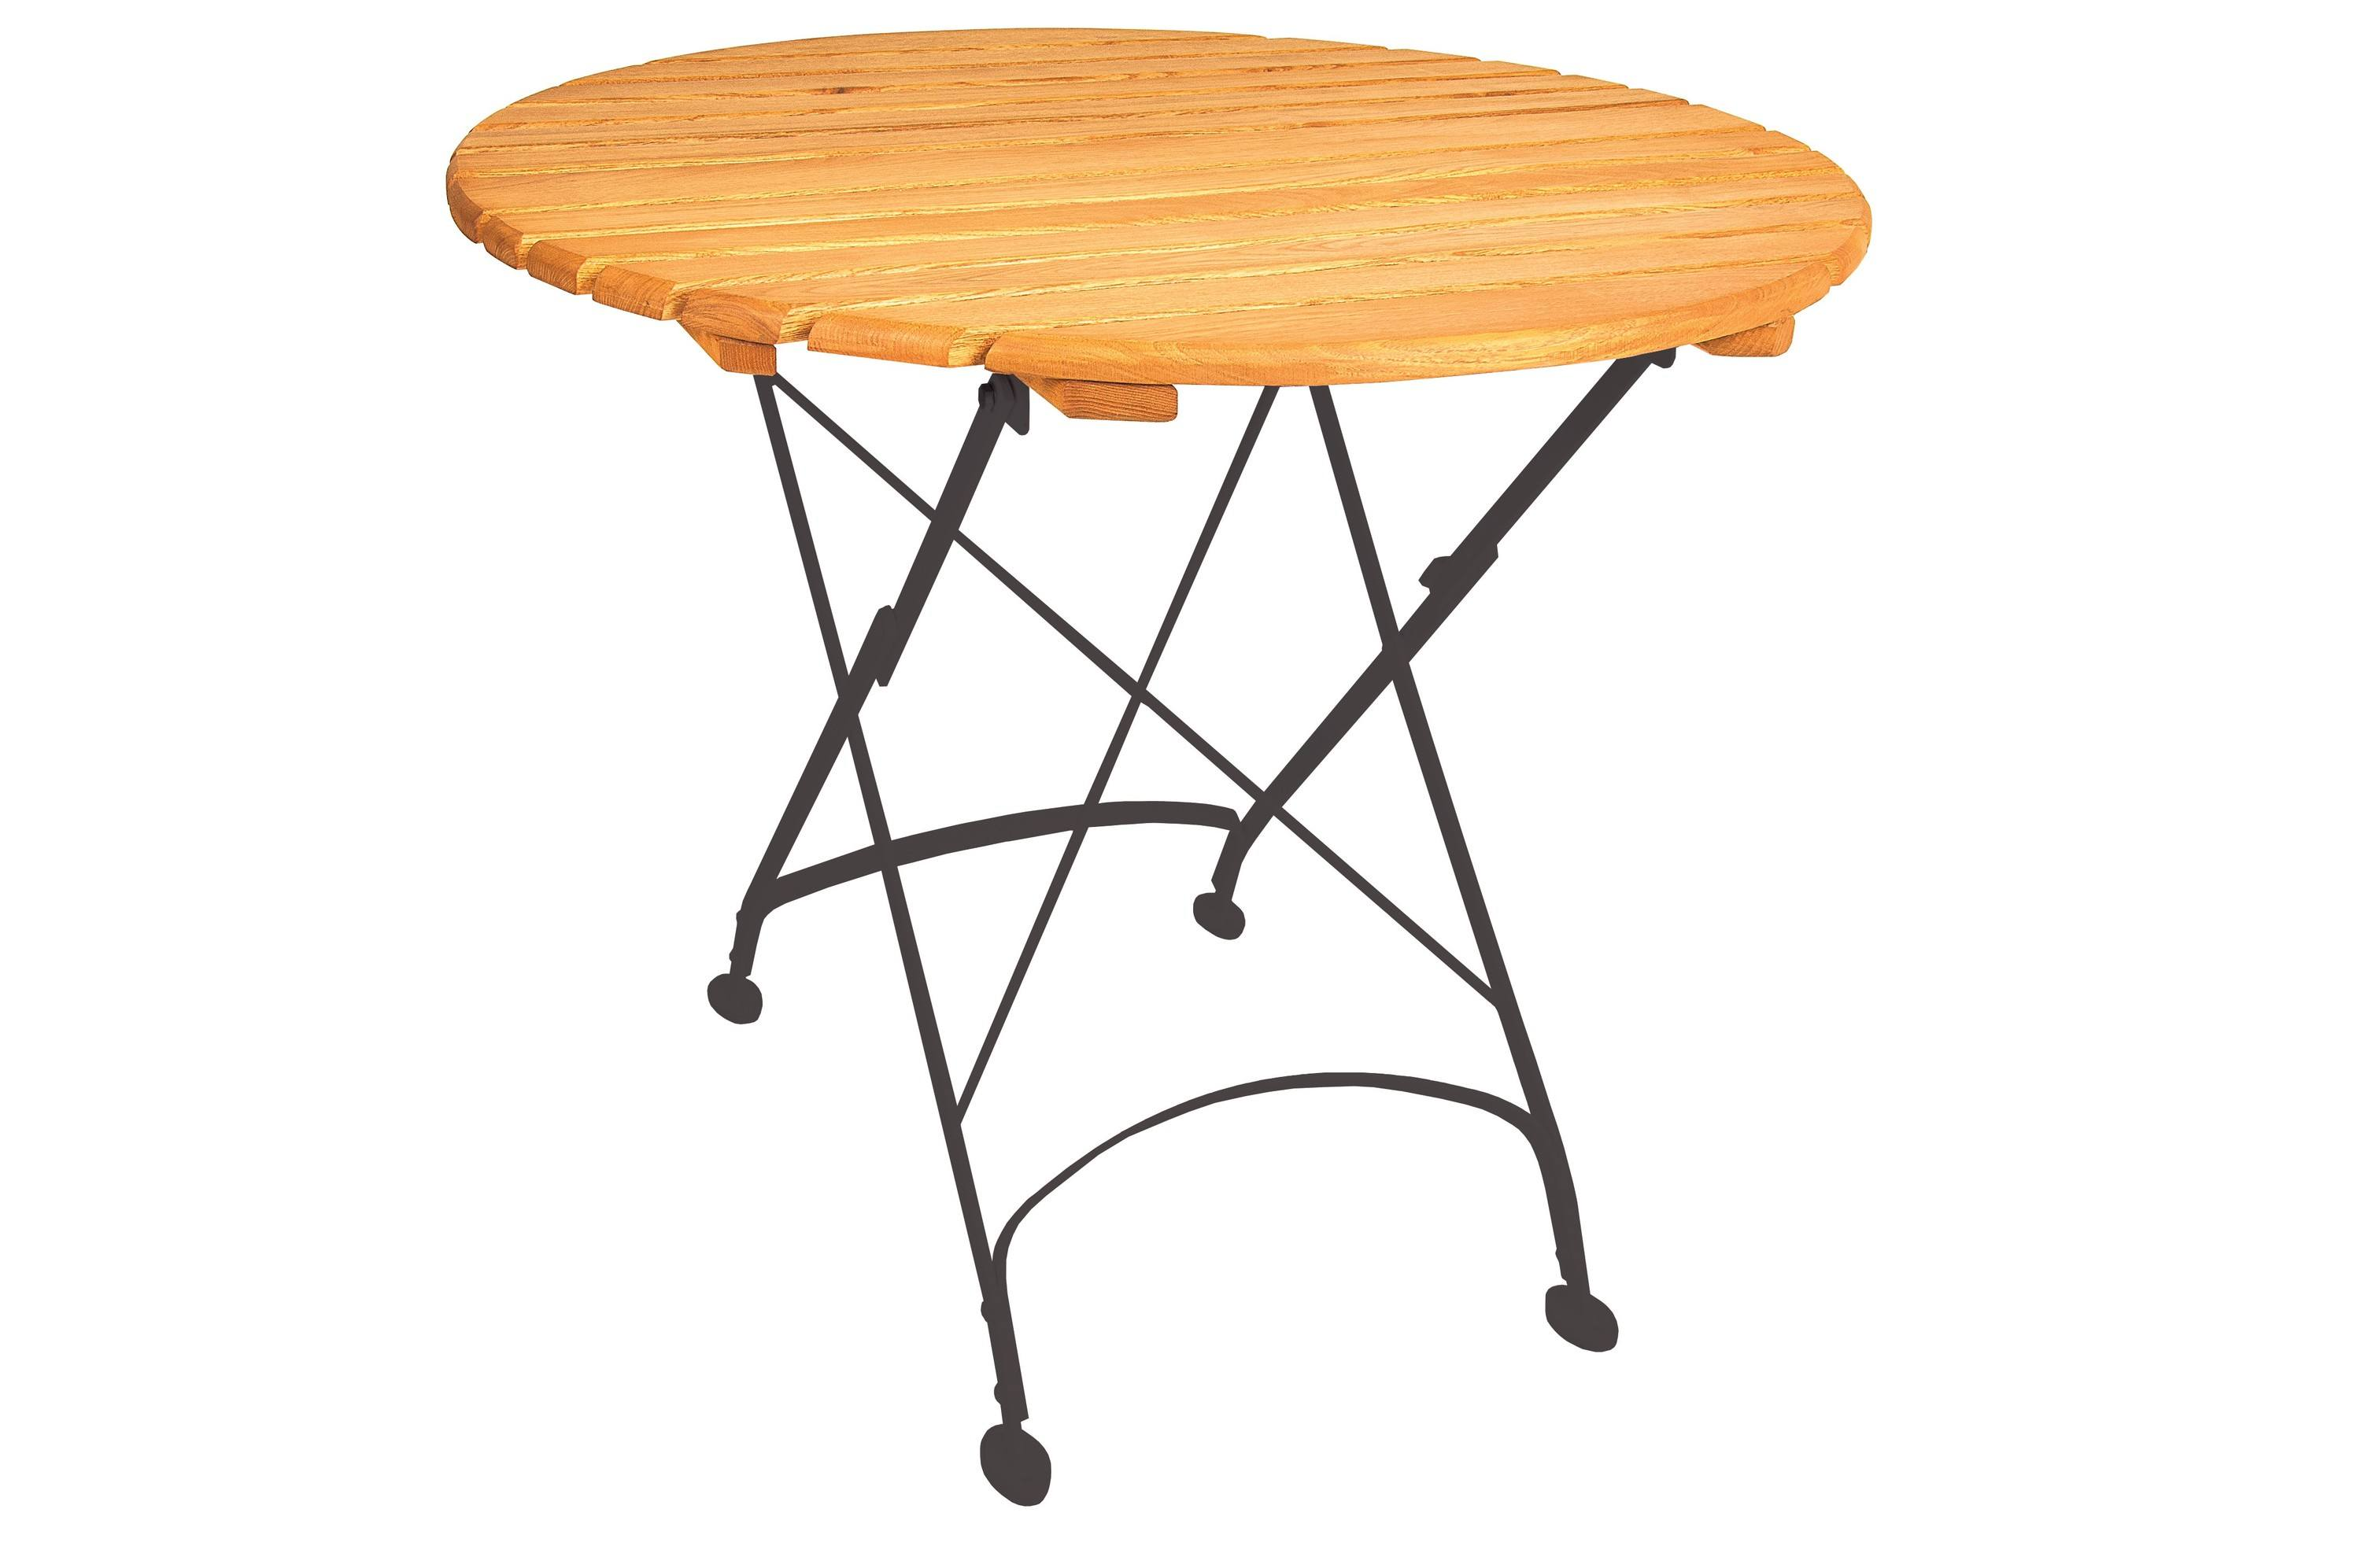 <p>Outdoor Furniture – Metal & Wooden Dining Collection – Classico Round Table.</p> <p> </p> <p>Classico Furniture round table with light coloured slatted hardwood framed tabletop black hand-forged frame and legs.</p> <p> </p> <p>Ideally suited for either indoor or outdoor relaxed dining location or more intimate café bistro al fresco area or for events requiring easy to fold and store furniture.</p>